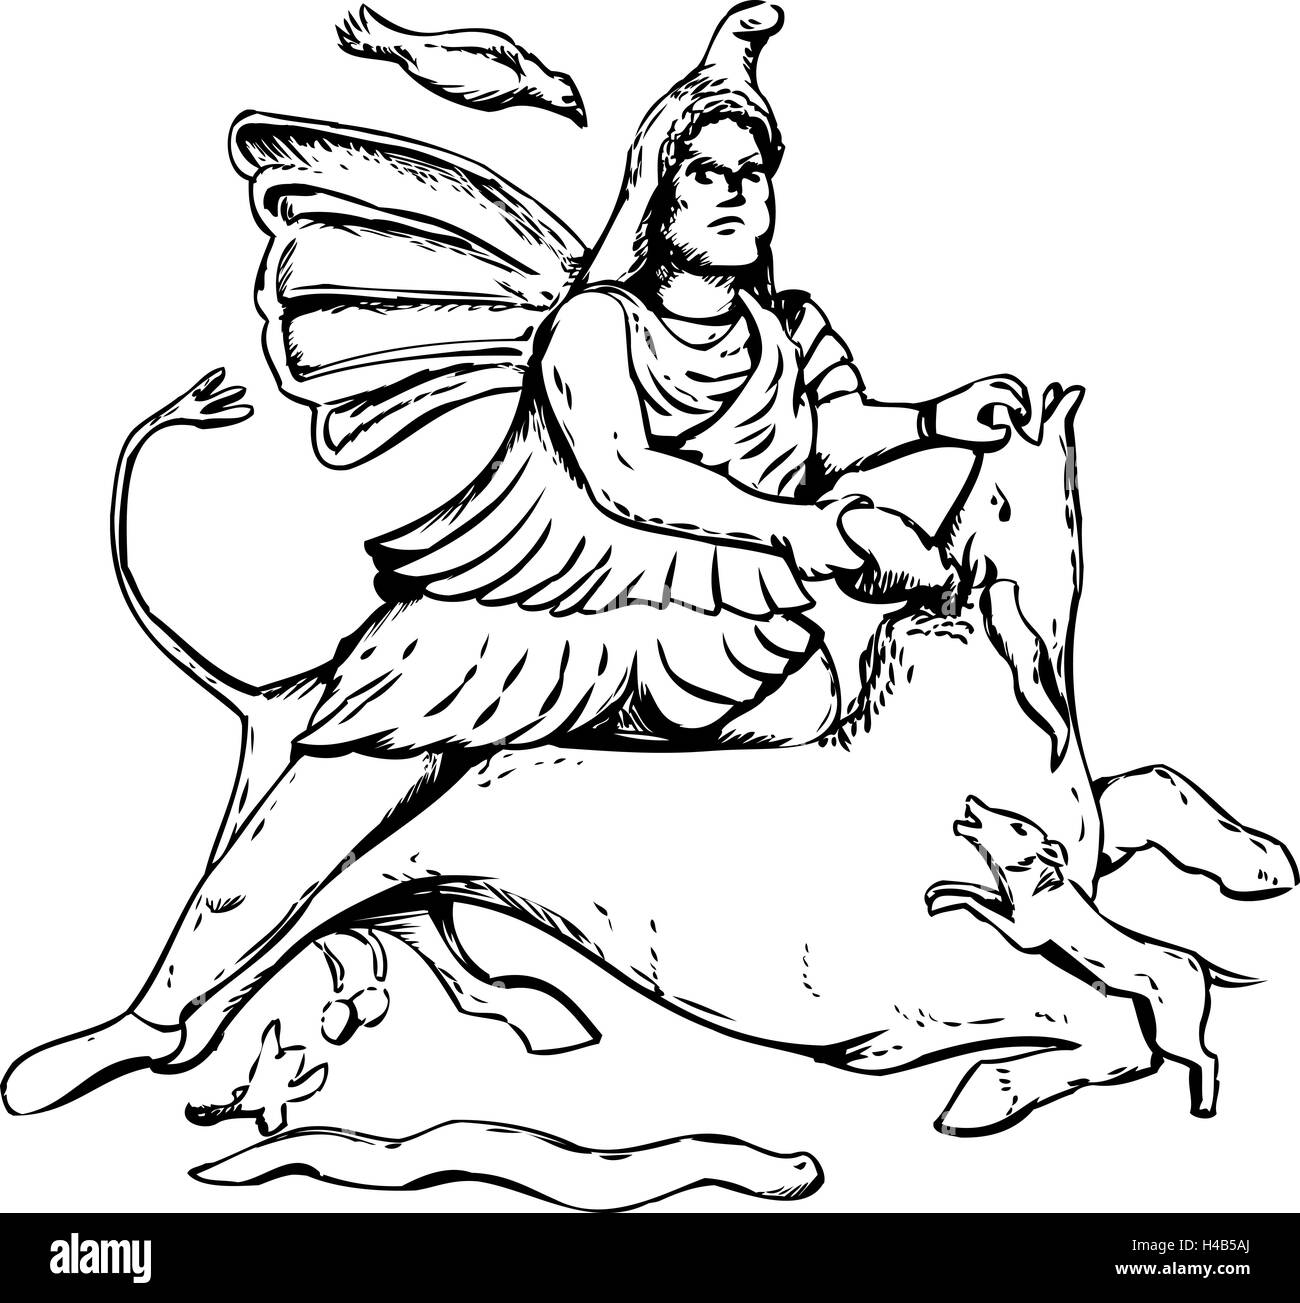 Outlined forensic reconstruction of Mithras slaying of a black bull from 4th century artwork - Stock Image